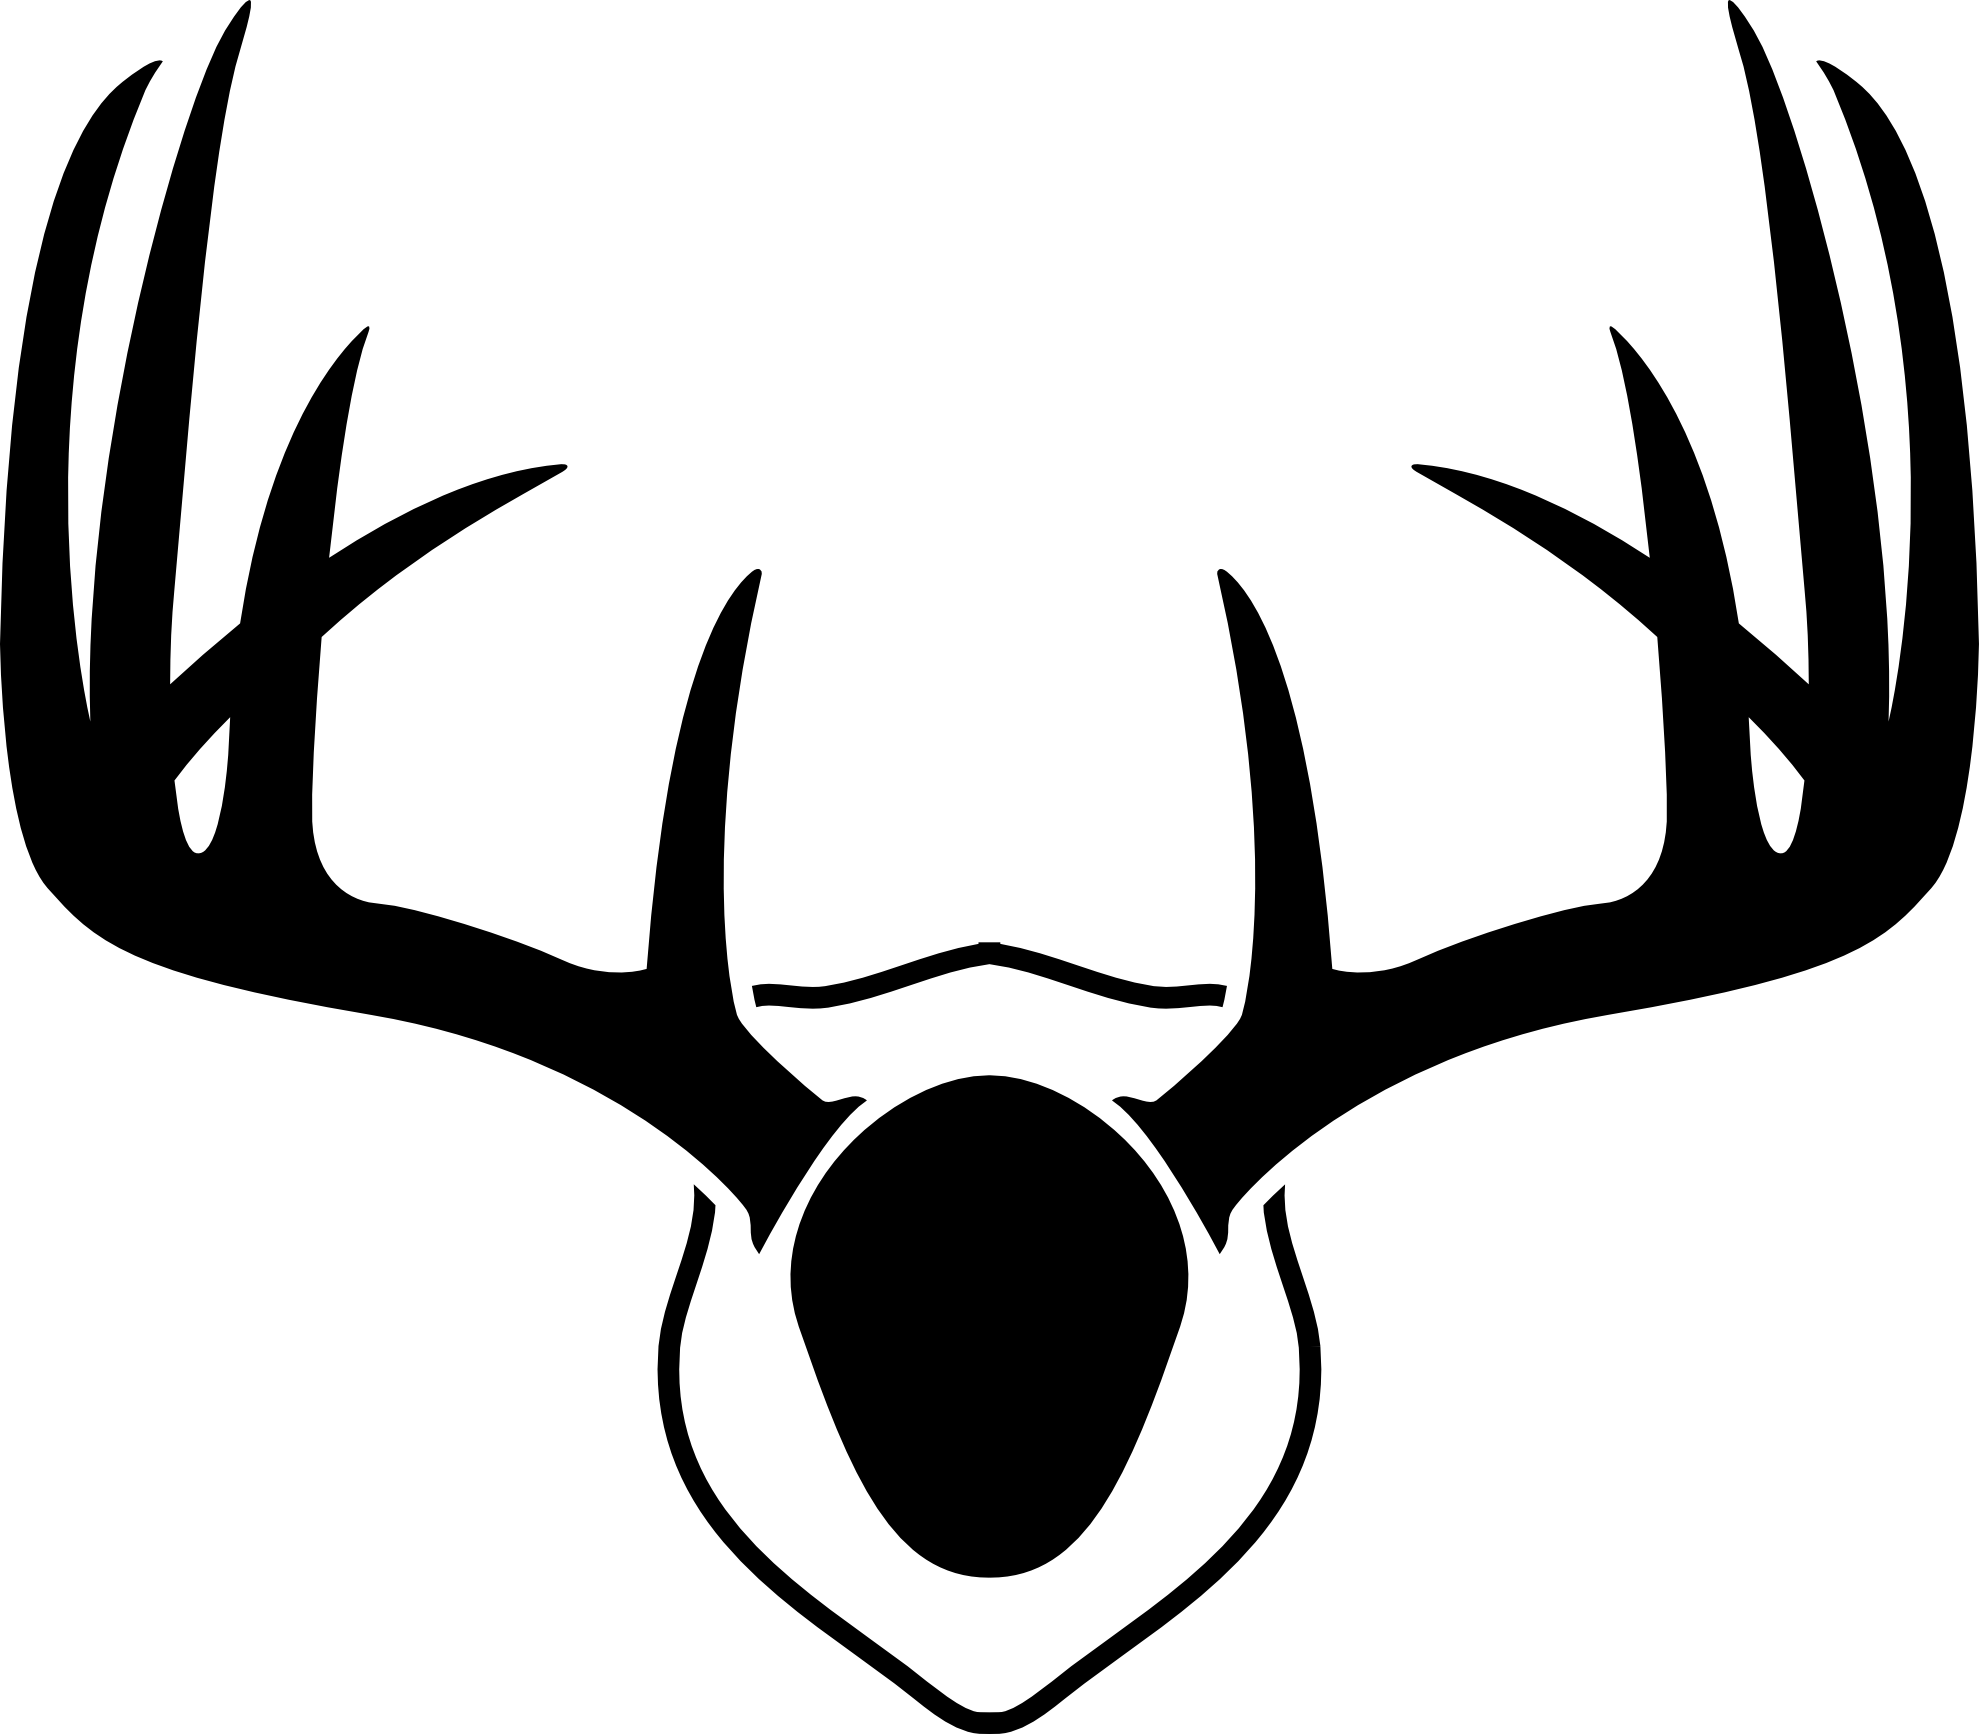 stag vector drawing